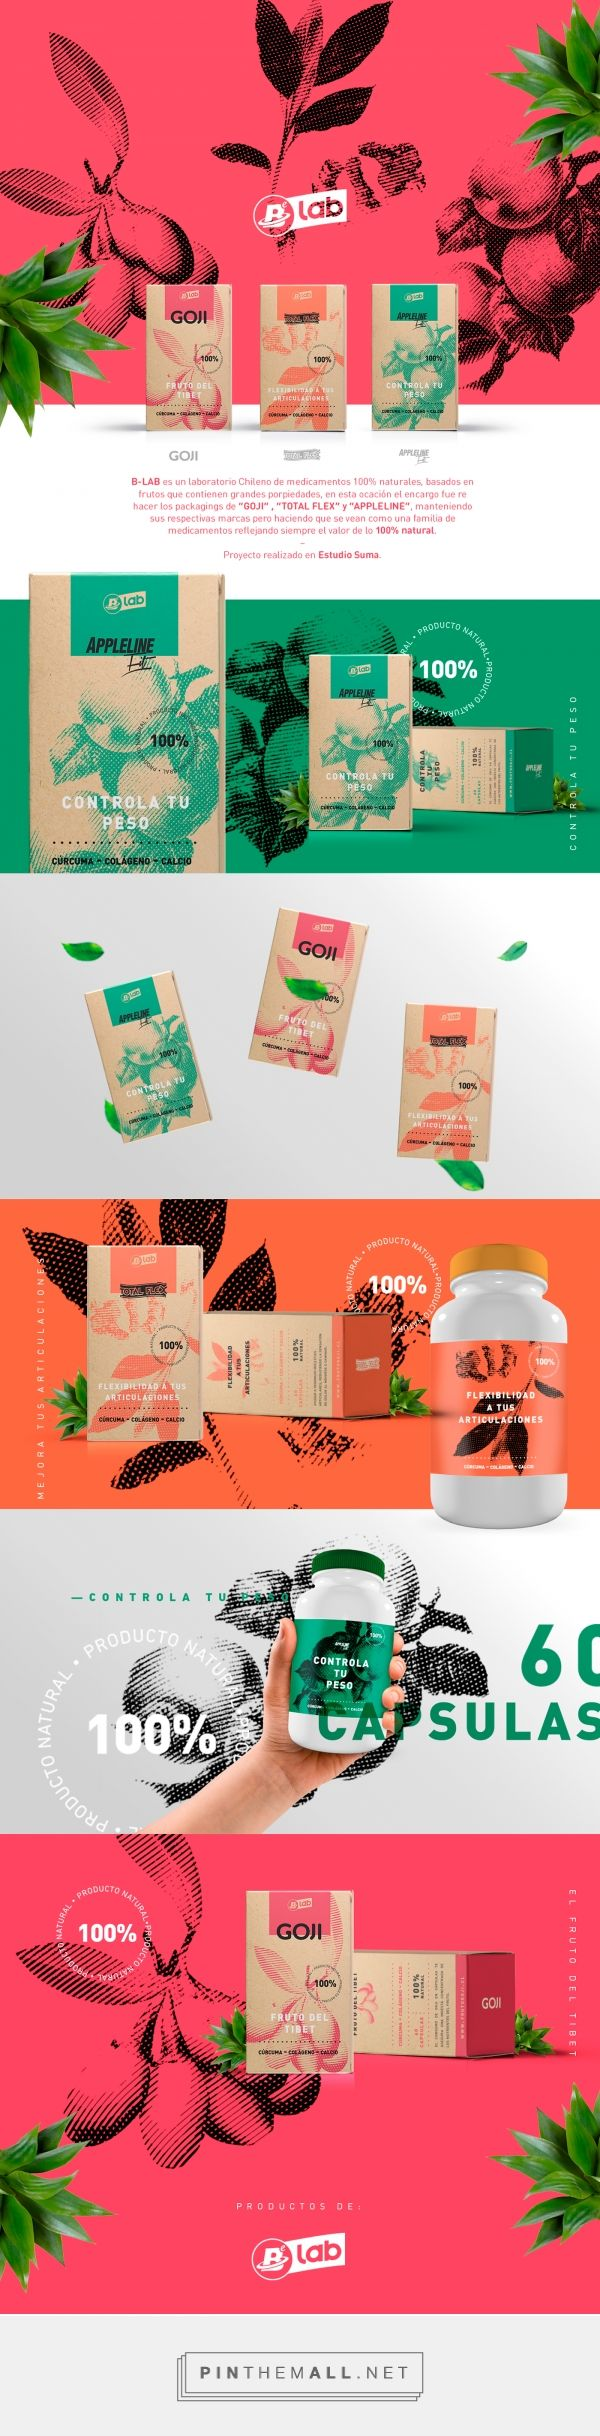 B-lab Packaging by Gonzalo Urquieta   Fivestar Branding Agency – Design and Branding Agency & Curated Inspiration Gallery #packaging #package #packagedesign #design #designinspiration